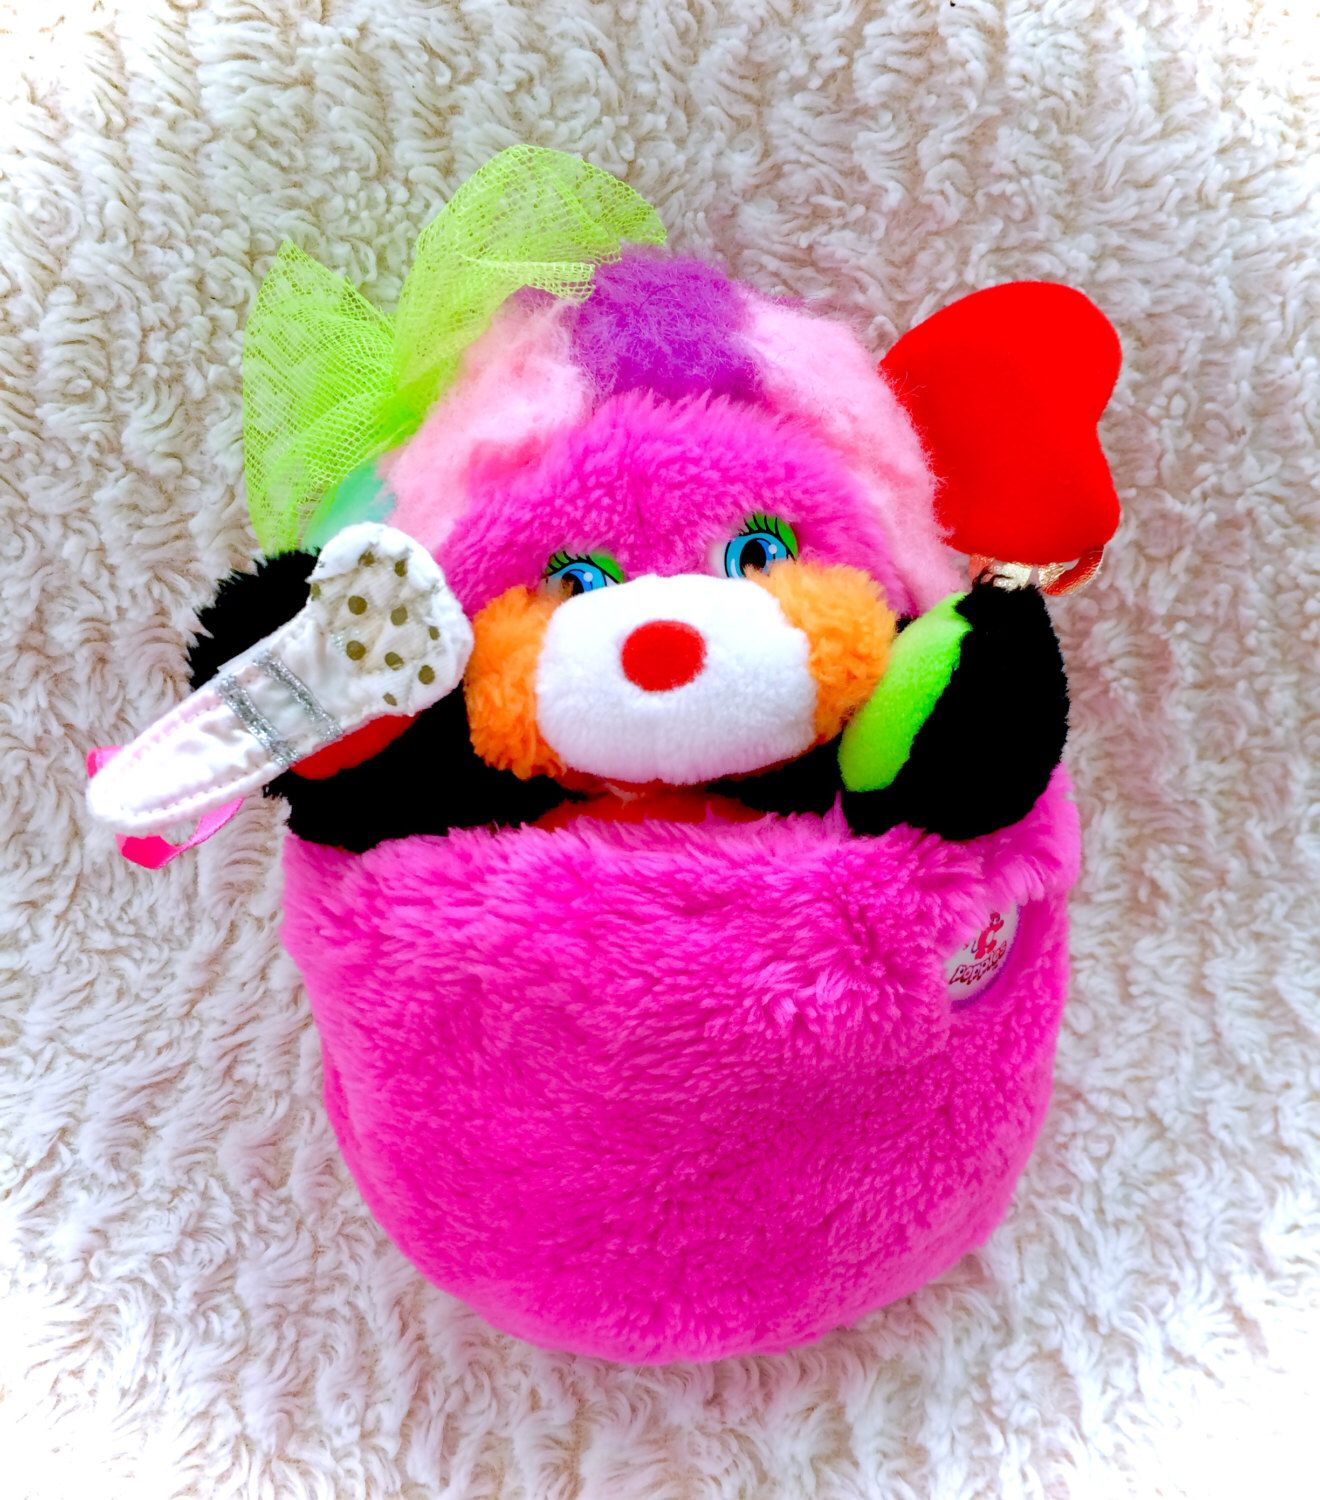 "Popples Vintage 1986 RARE Pink Punkity Rock Star Rocker Microphone Plush Plushie Stuffed Animal 12"" Cute HTF VTG 80s Retro Mattel Punk Music by KawaiiKel on Etsy https://www.etsy.com/listing/267671216/popples-vintage-1986-rare-pink-punkity"